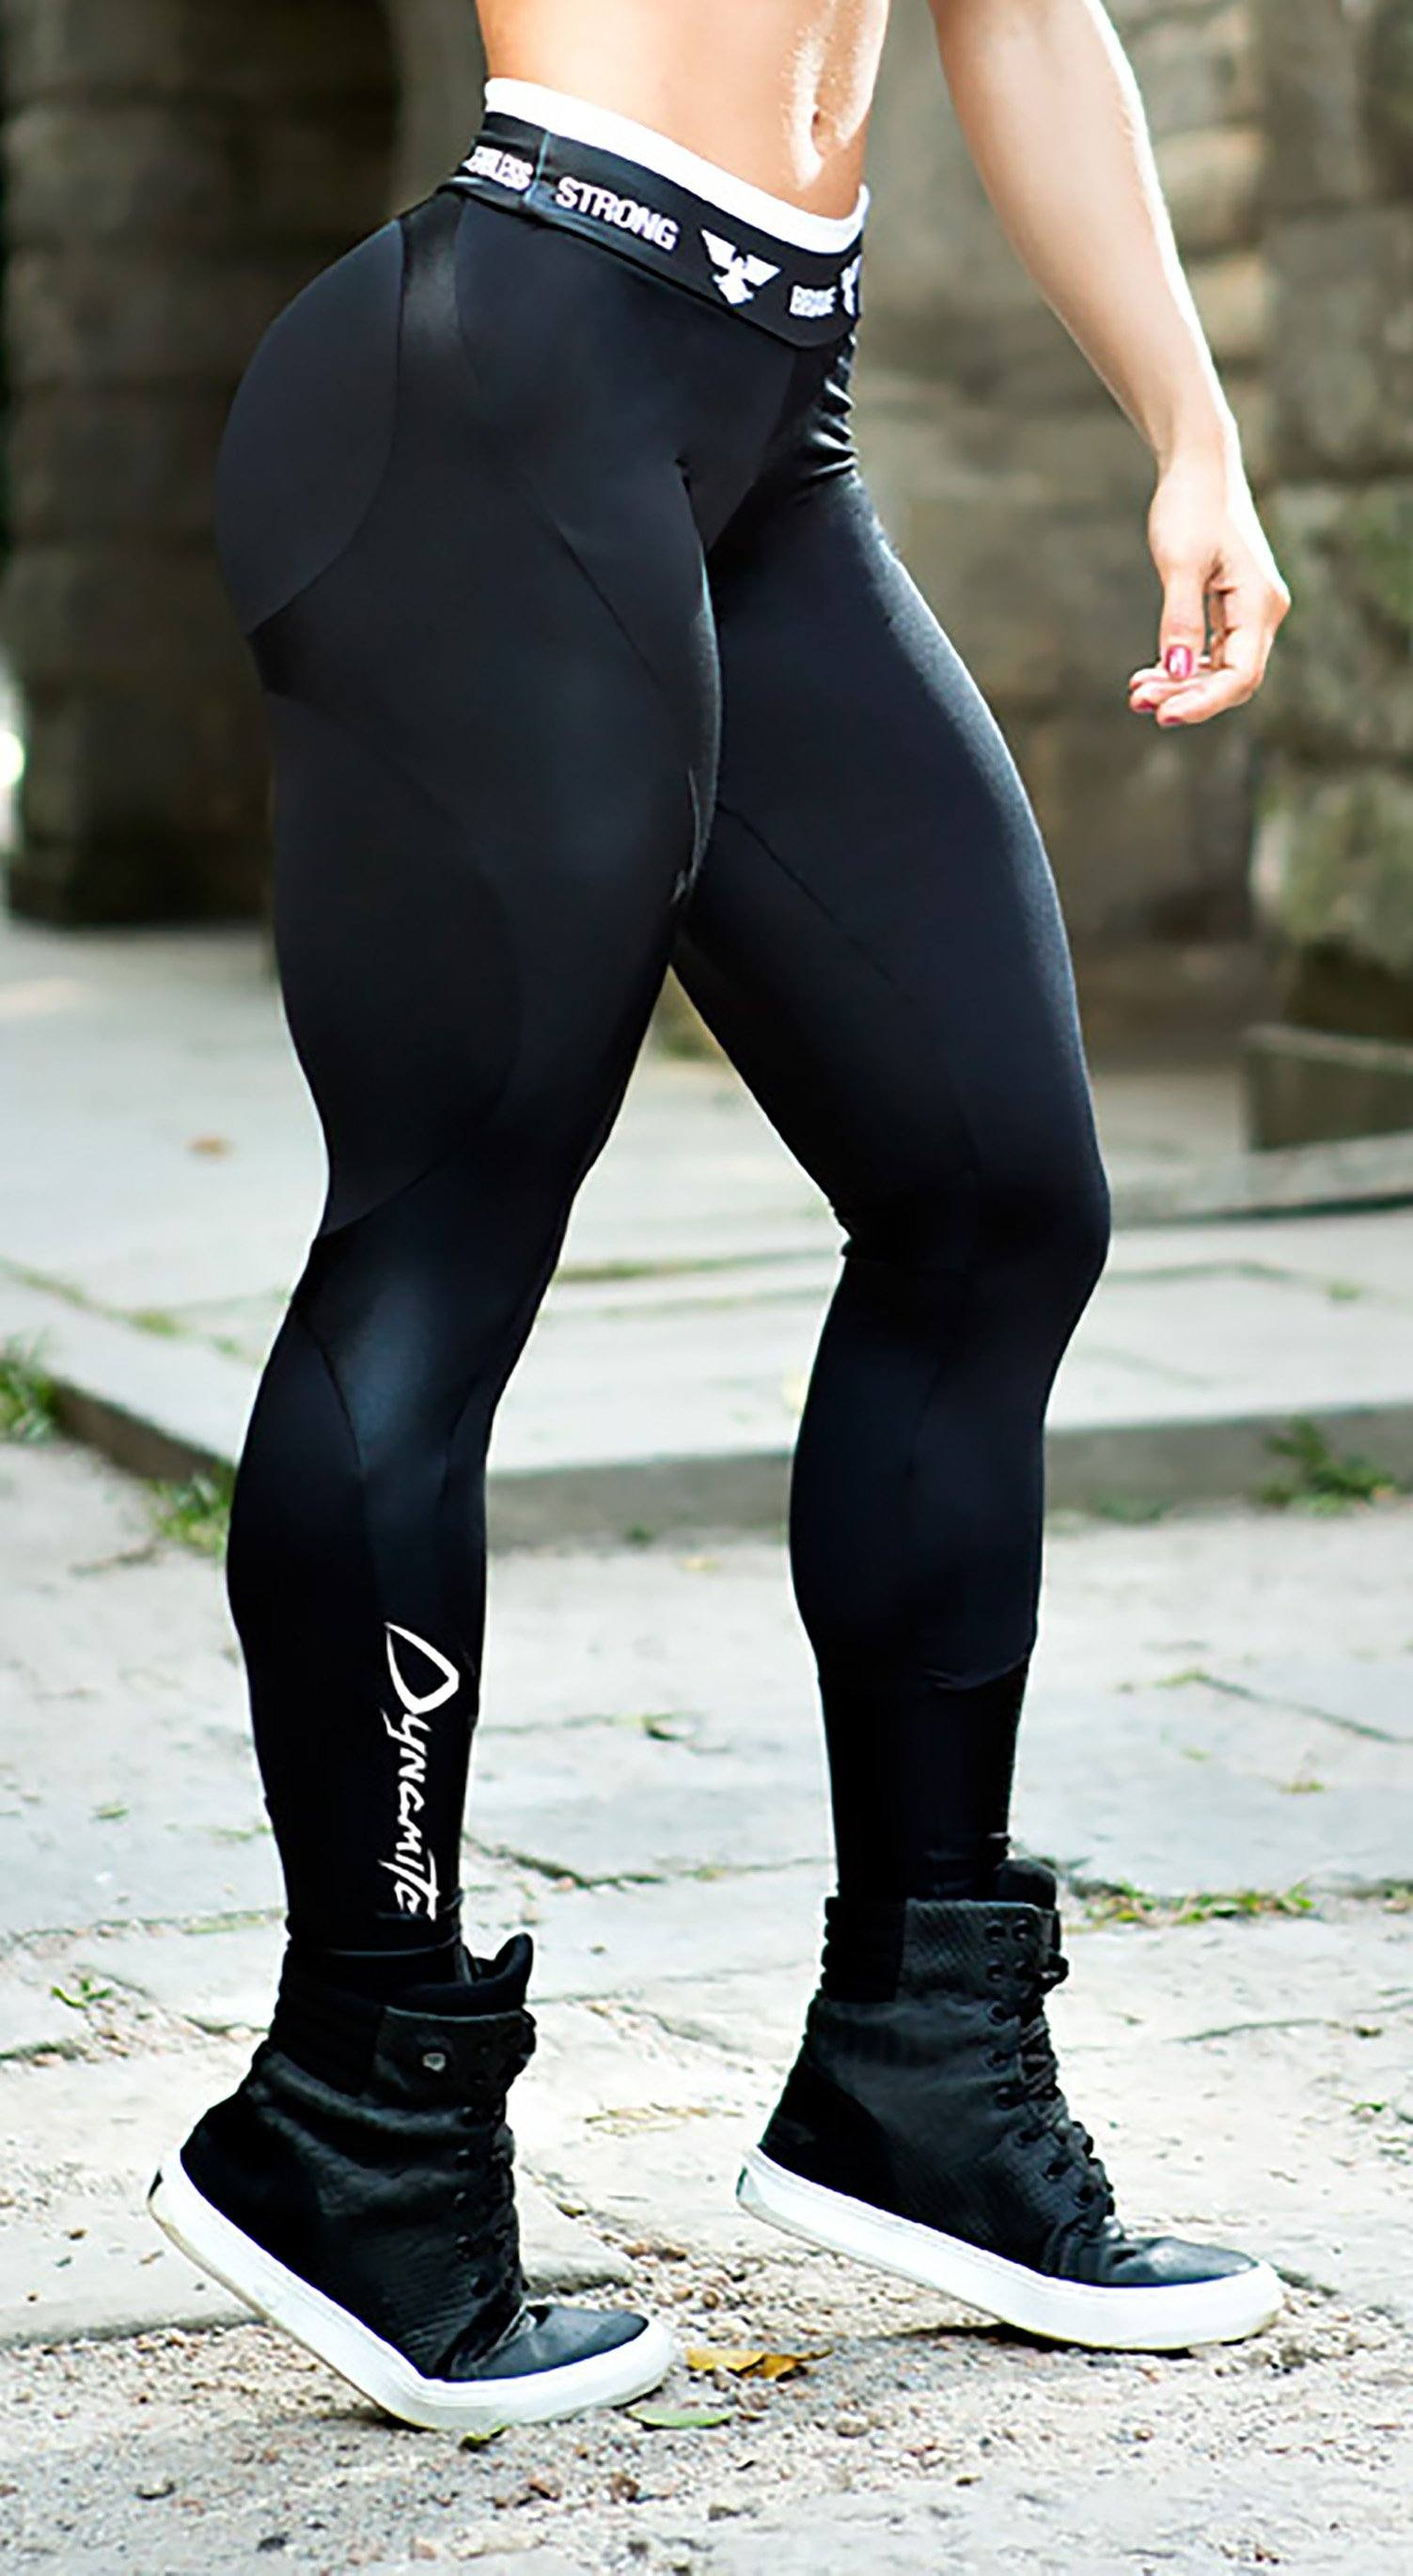 e8b46de6b7def Brazilian Workout Legging | Apple Booty Black | Top Rio Shop